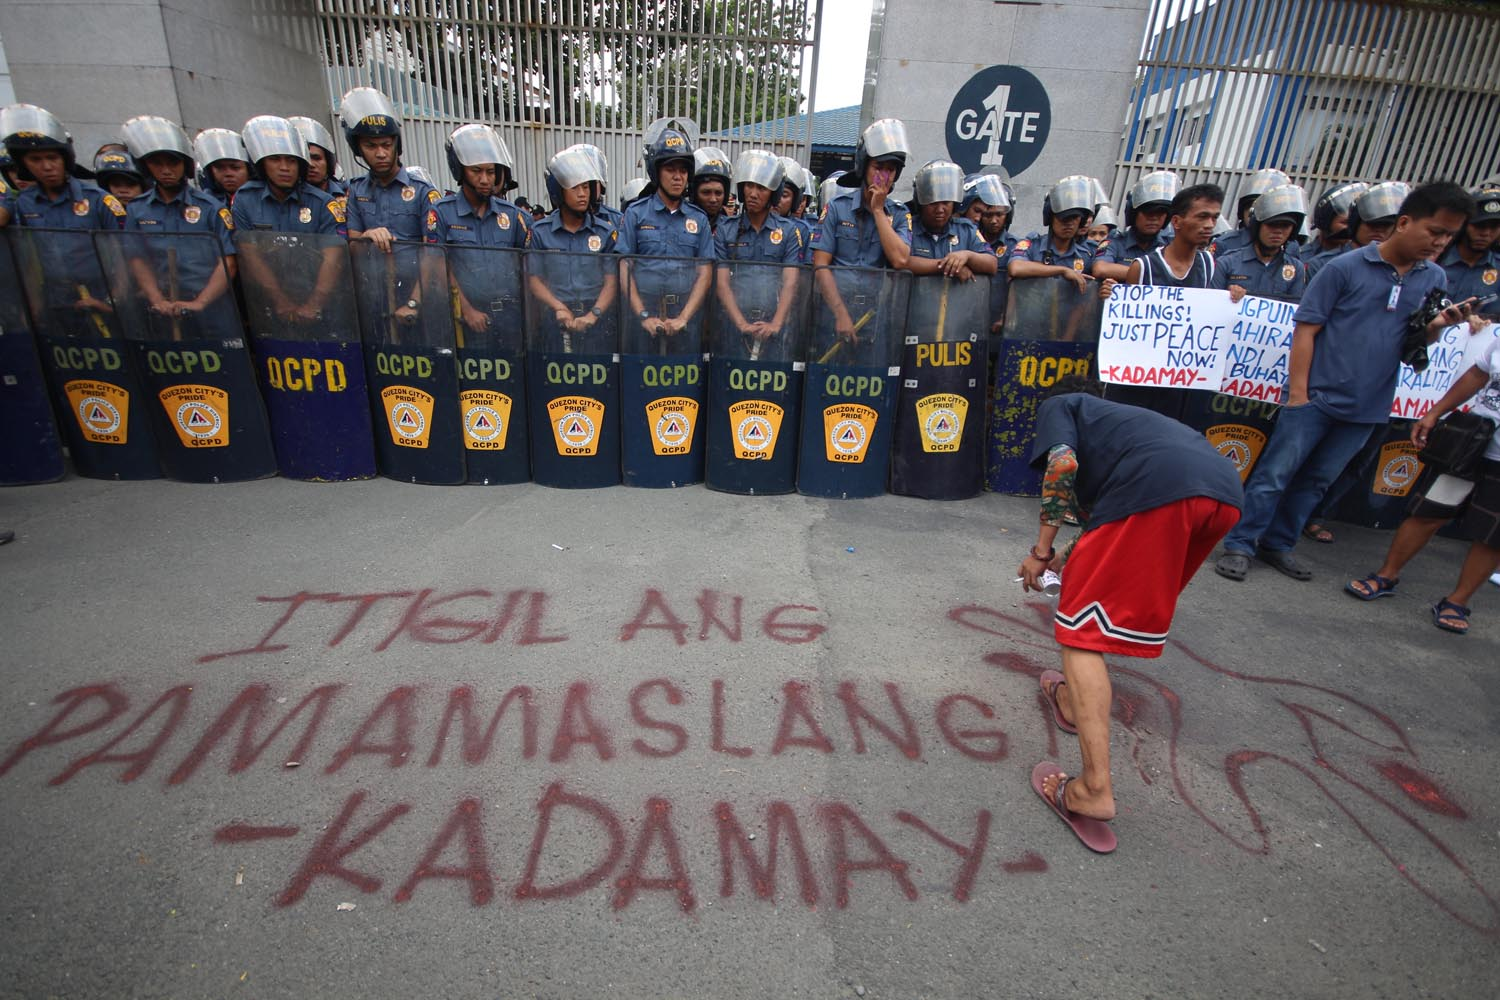 EXTRAJUDICIAL KILLINGS. Urban poor groups troop to Camp Crame on Wednesday, August 24, to protest drug-related extrajudicial killings in the Philippines. Photo by Joel Liporada/Rappler